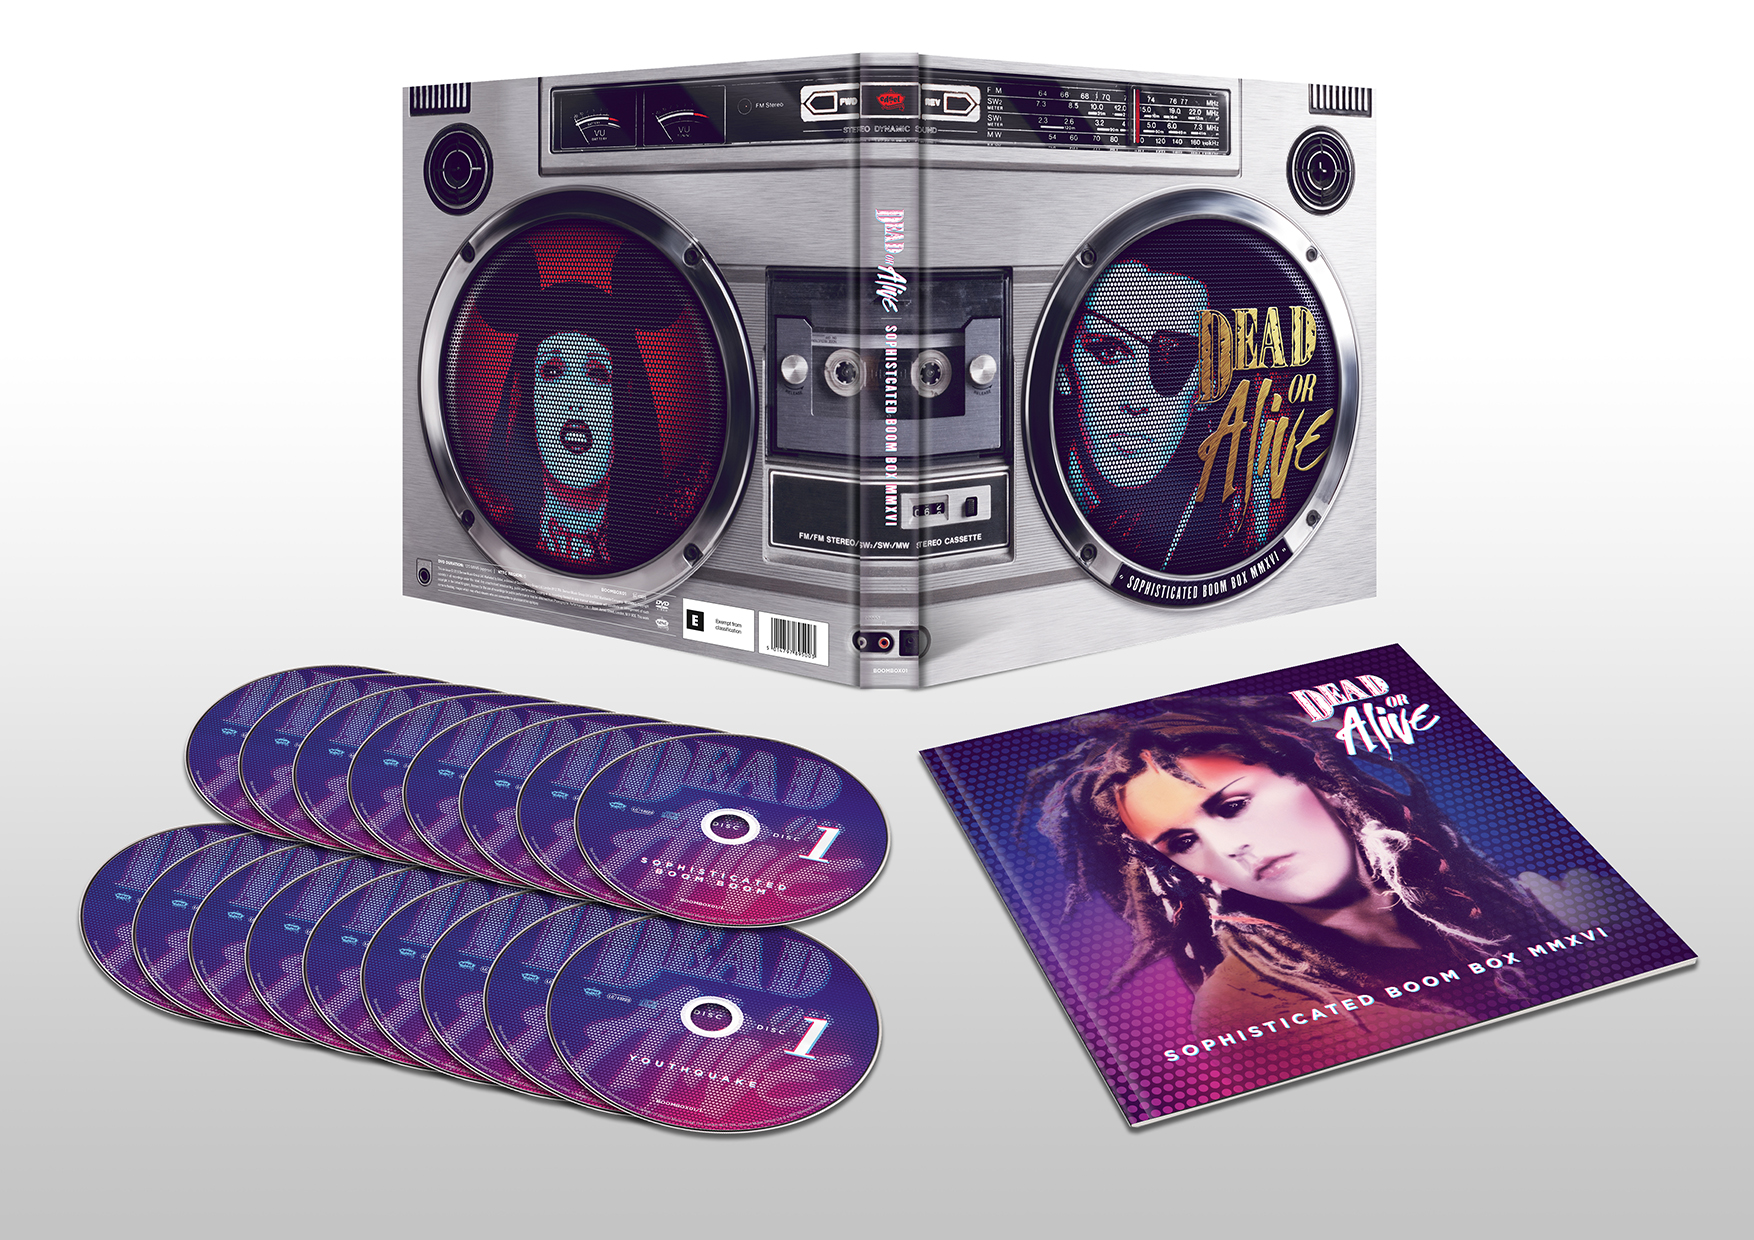 Dead Or Alive Boxset Revealed